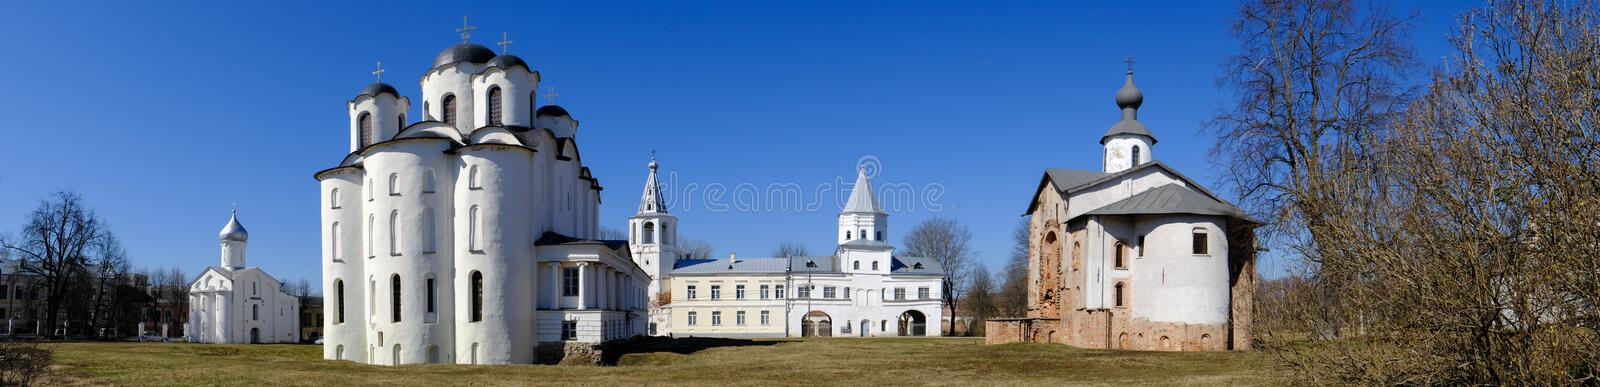 Yaroslav`s Court in Veliky Novgorod. Nikolo-Dvorishchensky Cathedral, an important historical tourist site of Russia royalty free stock photo